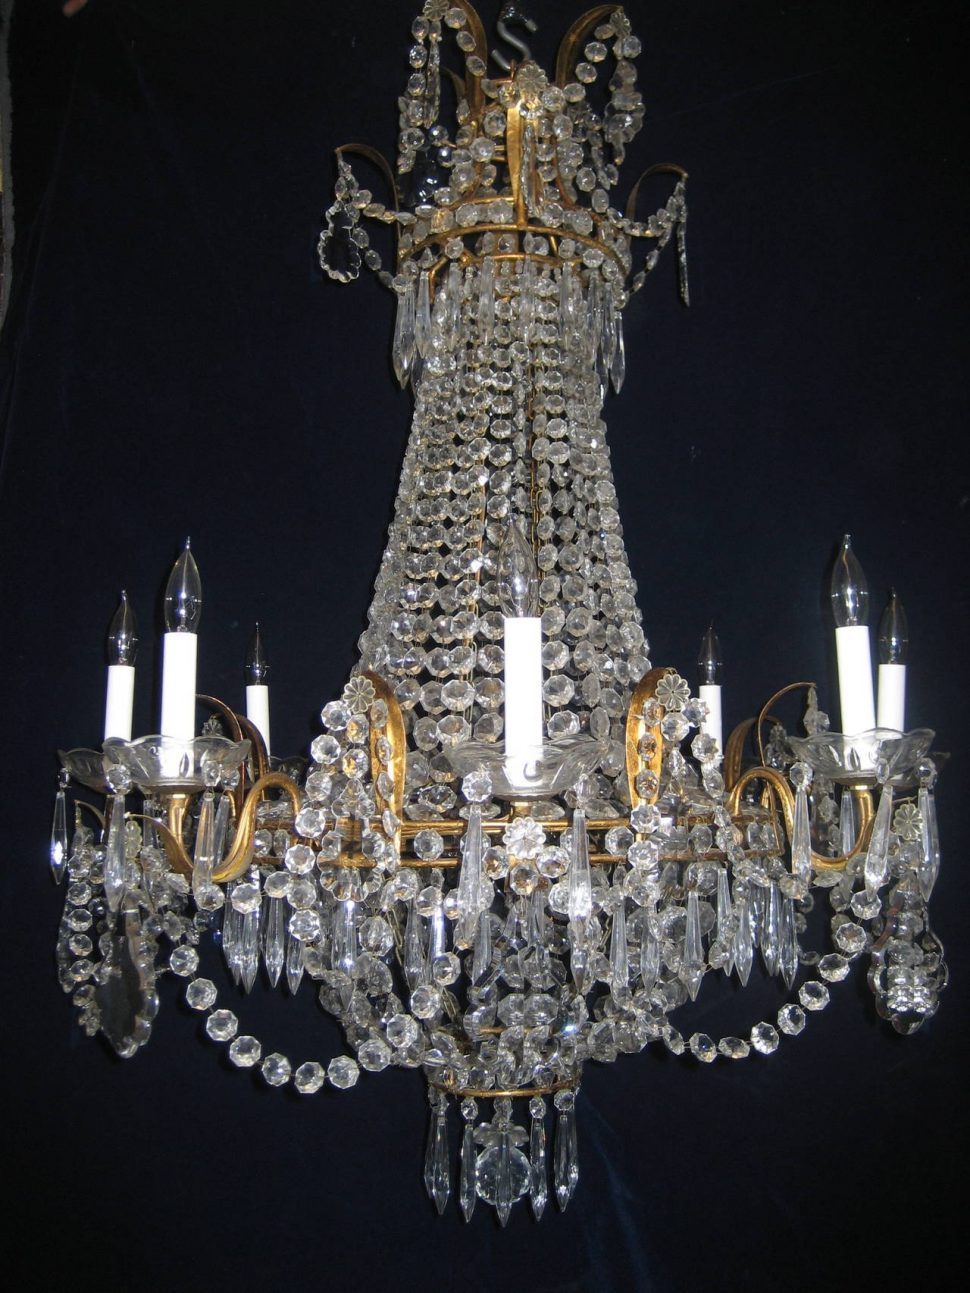 Image of: Winsome Crystal Chandeliers Wholesale Chandelier Crystals Bronze And Cheap Lighting Drum Pendant With Mini Large Modern Cha Living Room High Quality For Home Ideas Shade Lights 970 1293 Ho 1 Tanat Light